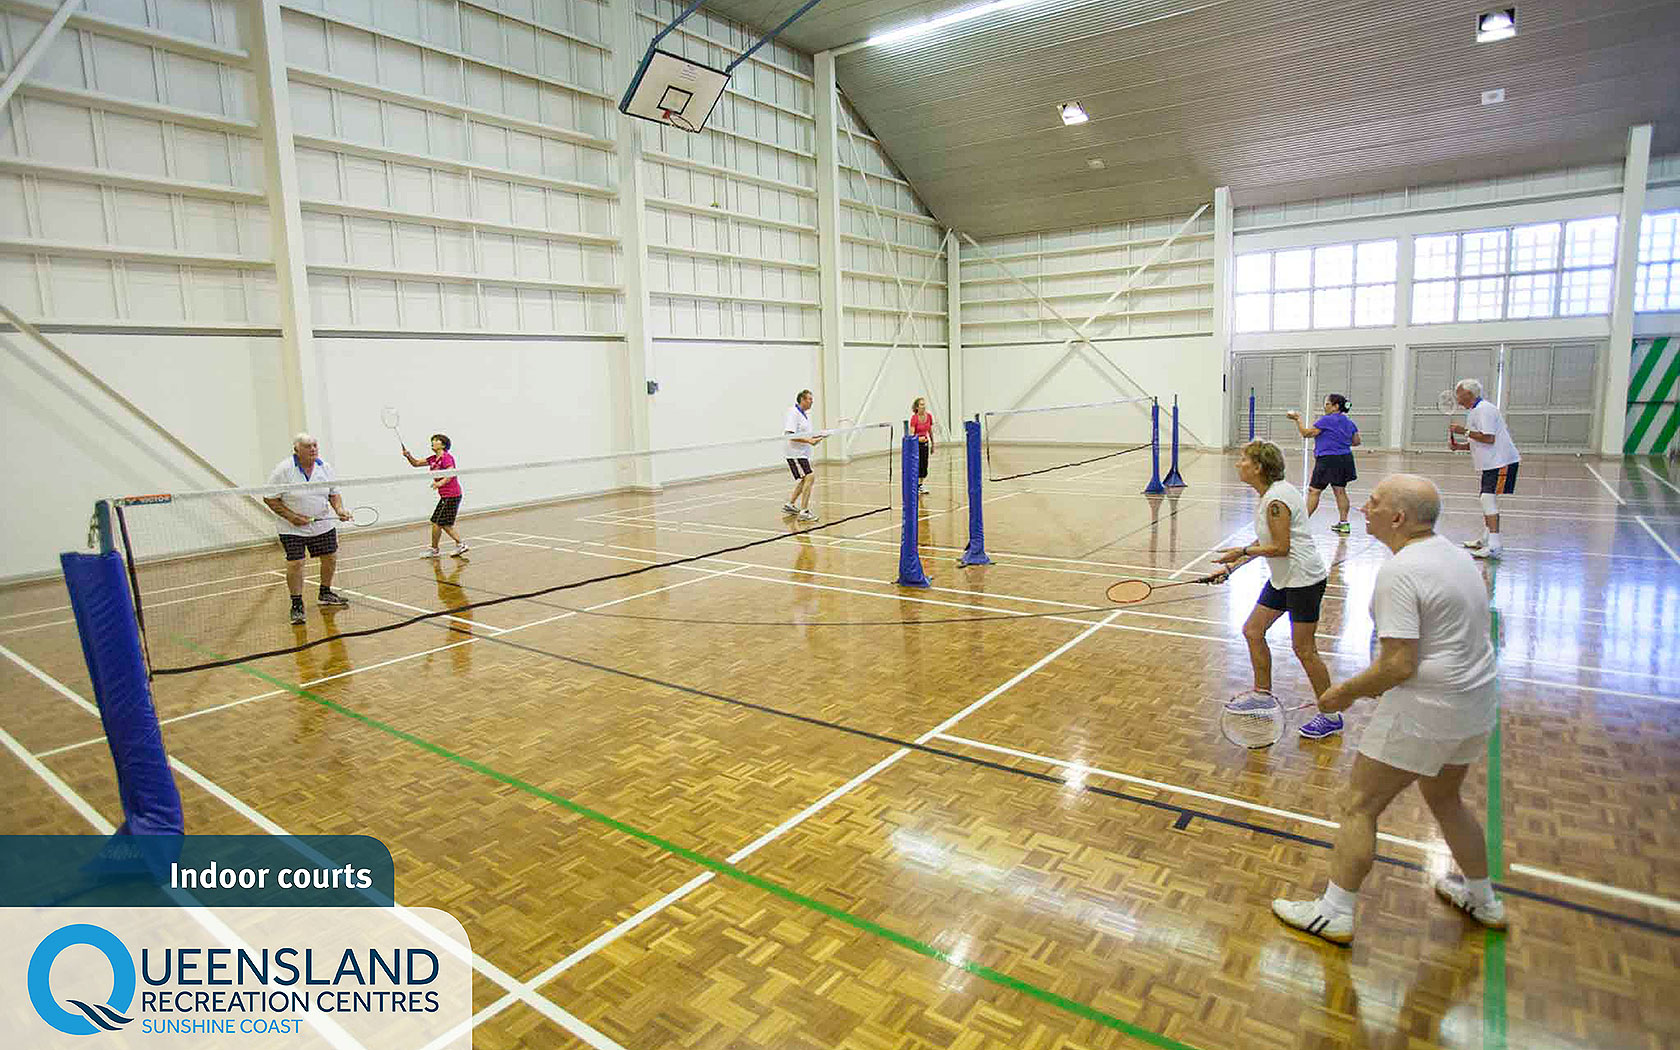 Visitors playing badminton in the indoor courts of the Sunshine Coast Recreation Centre